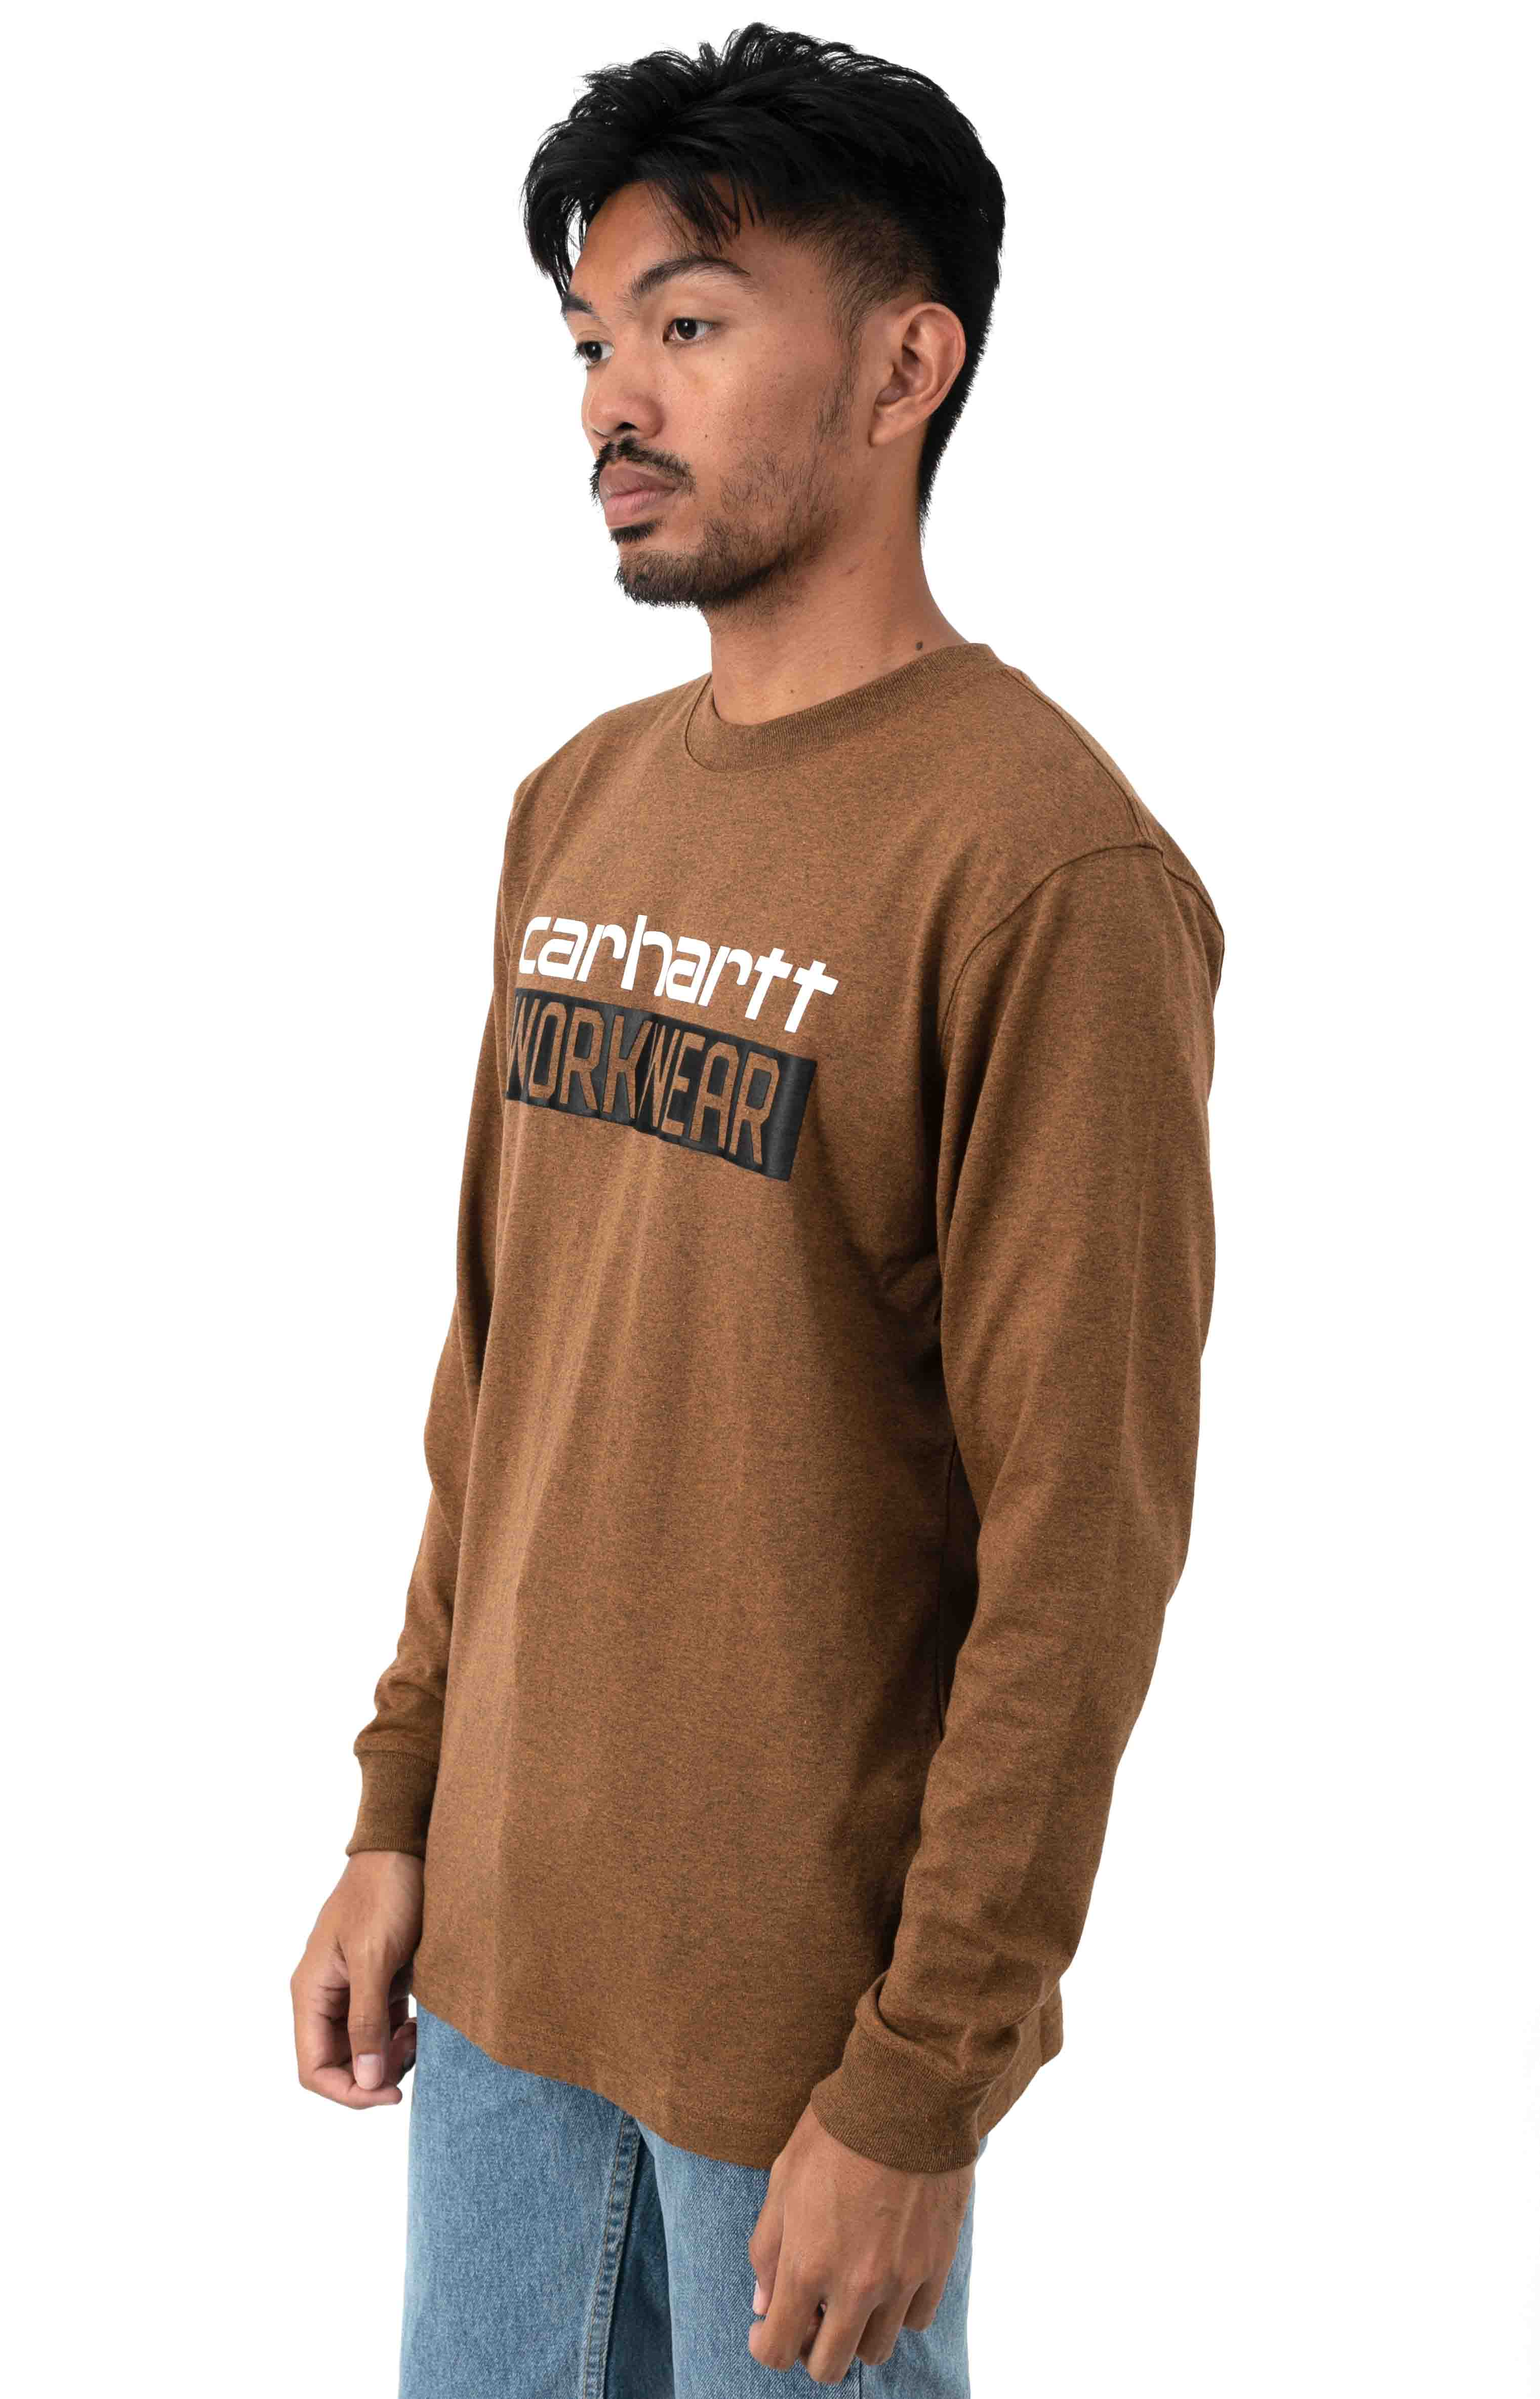 (104431) Original Fit HW L/S Workwear Graphic Shirt - Oiled Walnut Heather  2